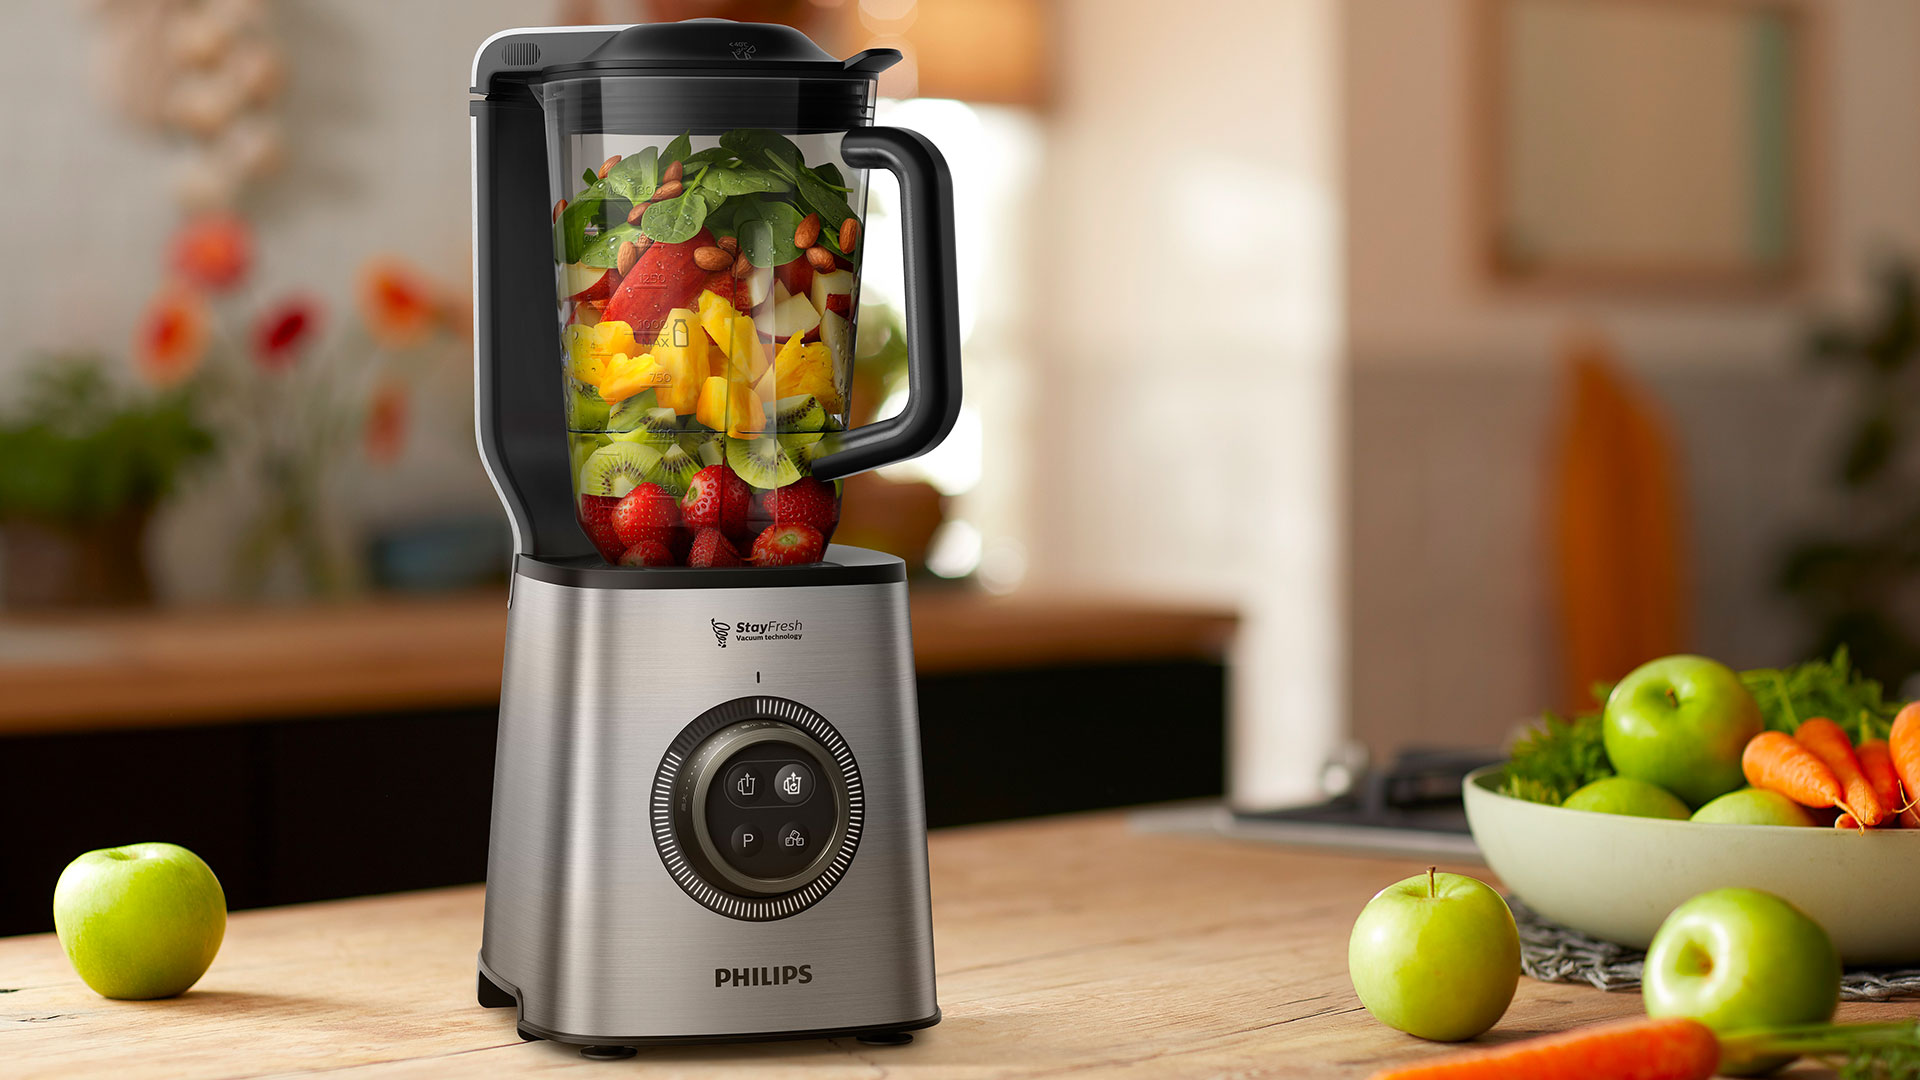 With a vacuum blending chamber and powerful StayFresh technology, the Philips High Speed Vacuum Blender keeps smoothies fresh throughout the day